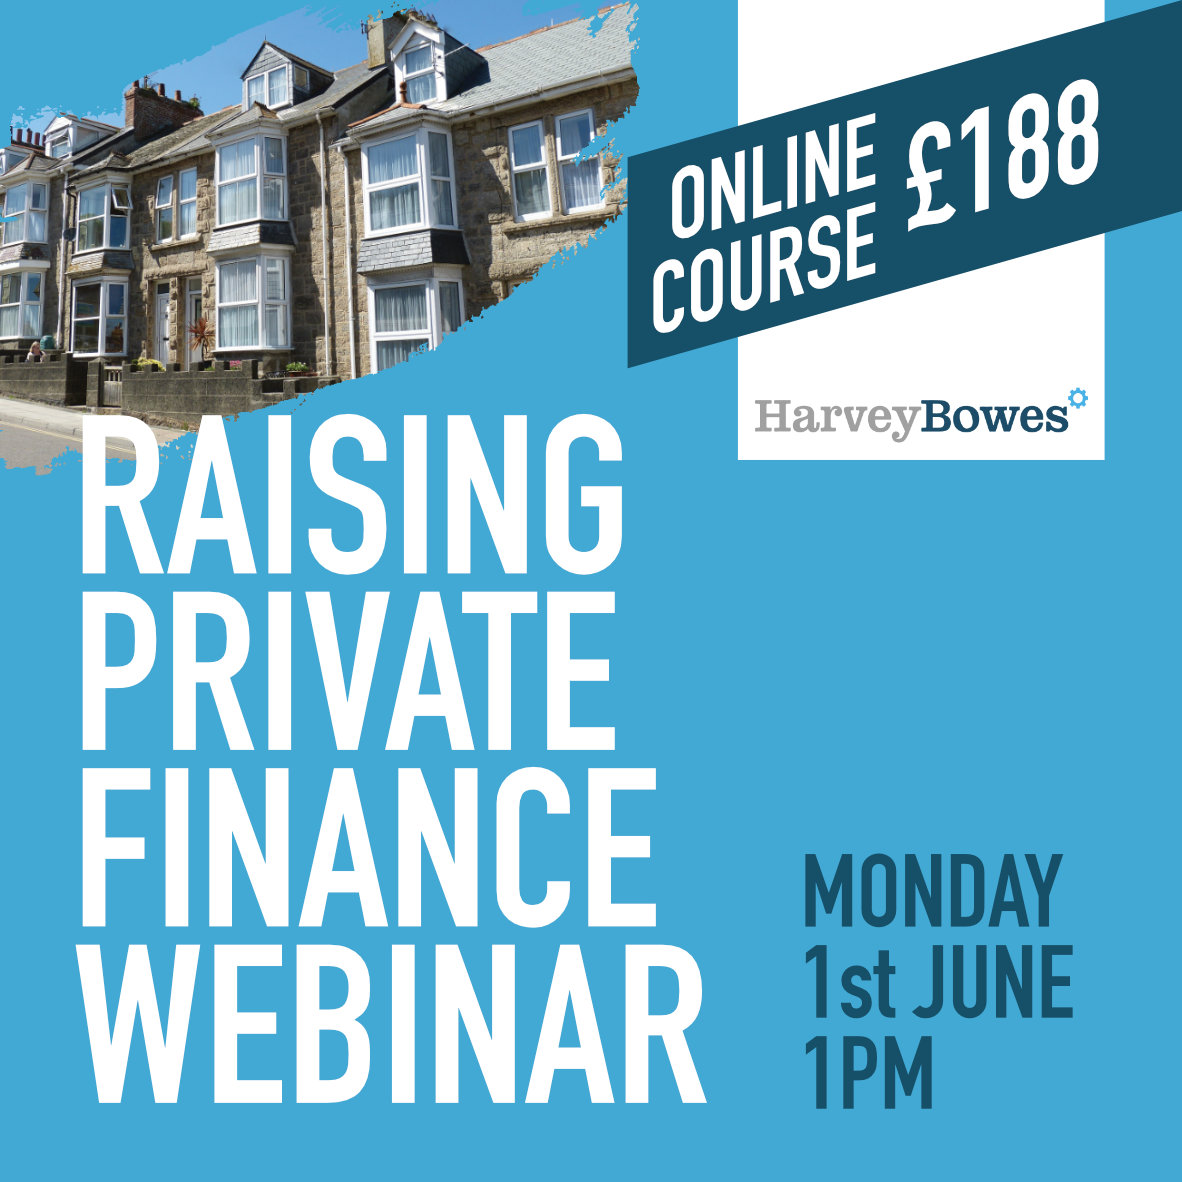 Raising Private Finance Webinar - Monday 1st June - 1pm